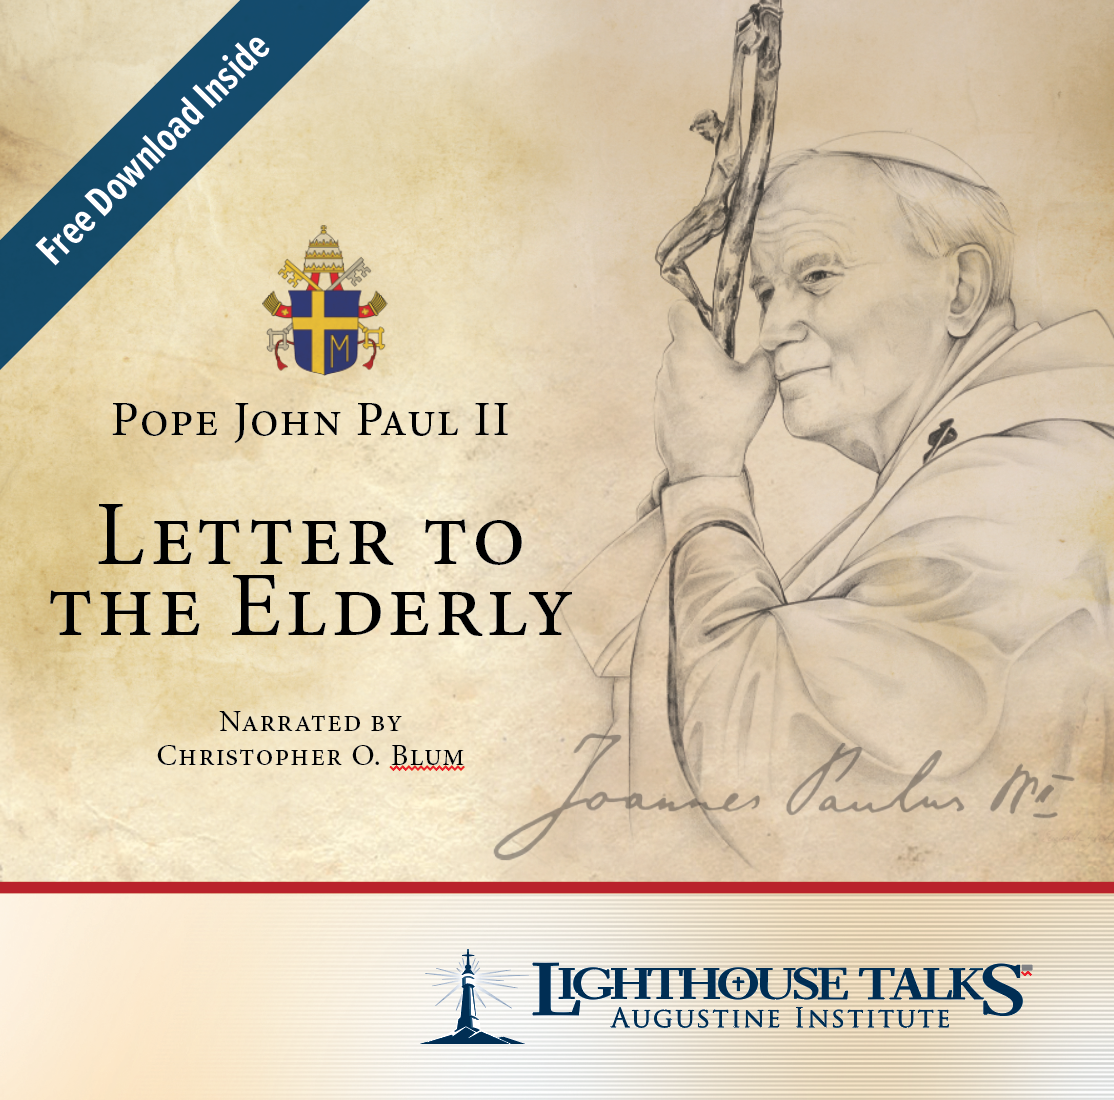 Letter to the Elderly - Pope John Paul  II